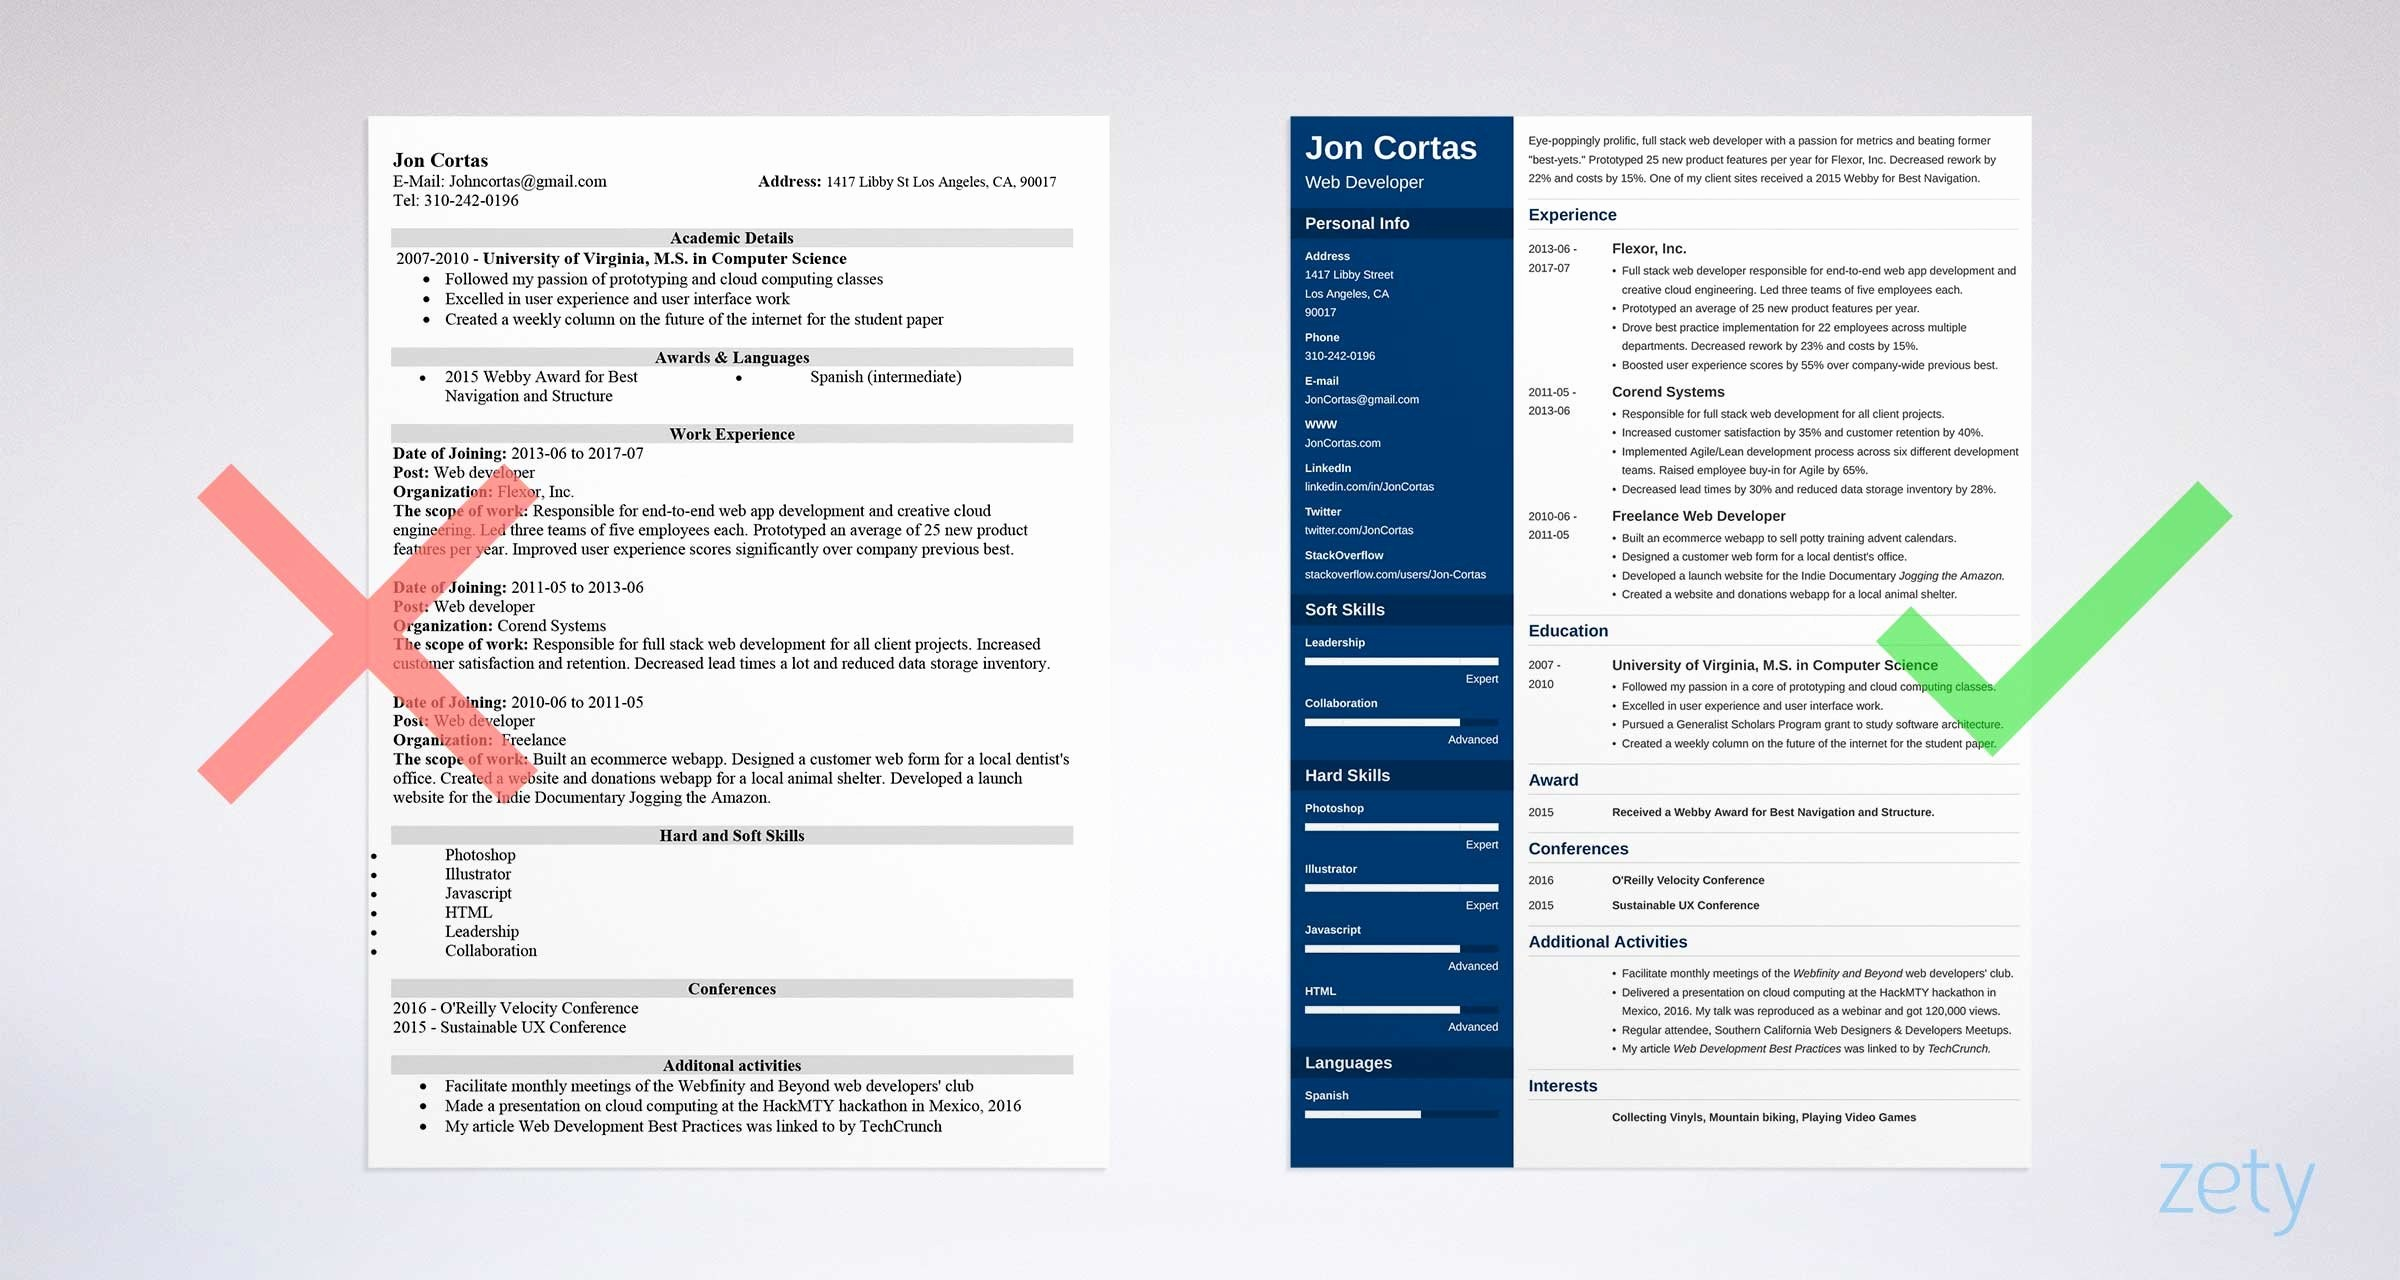 Professional Resume Template Microsoft Word Fresh Free Resume Templates for Word 15 Cv Resume formats to